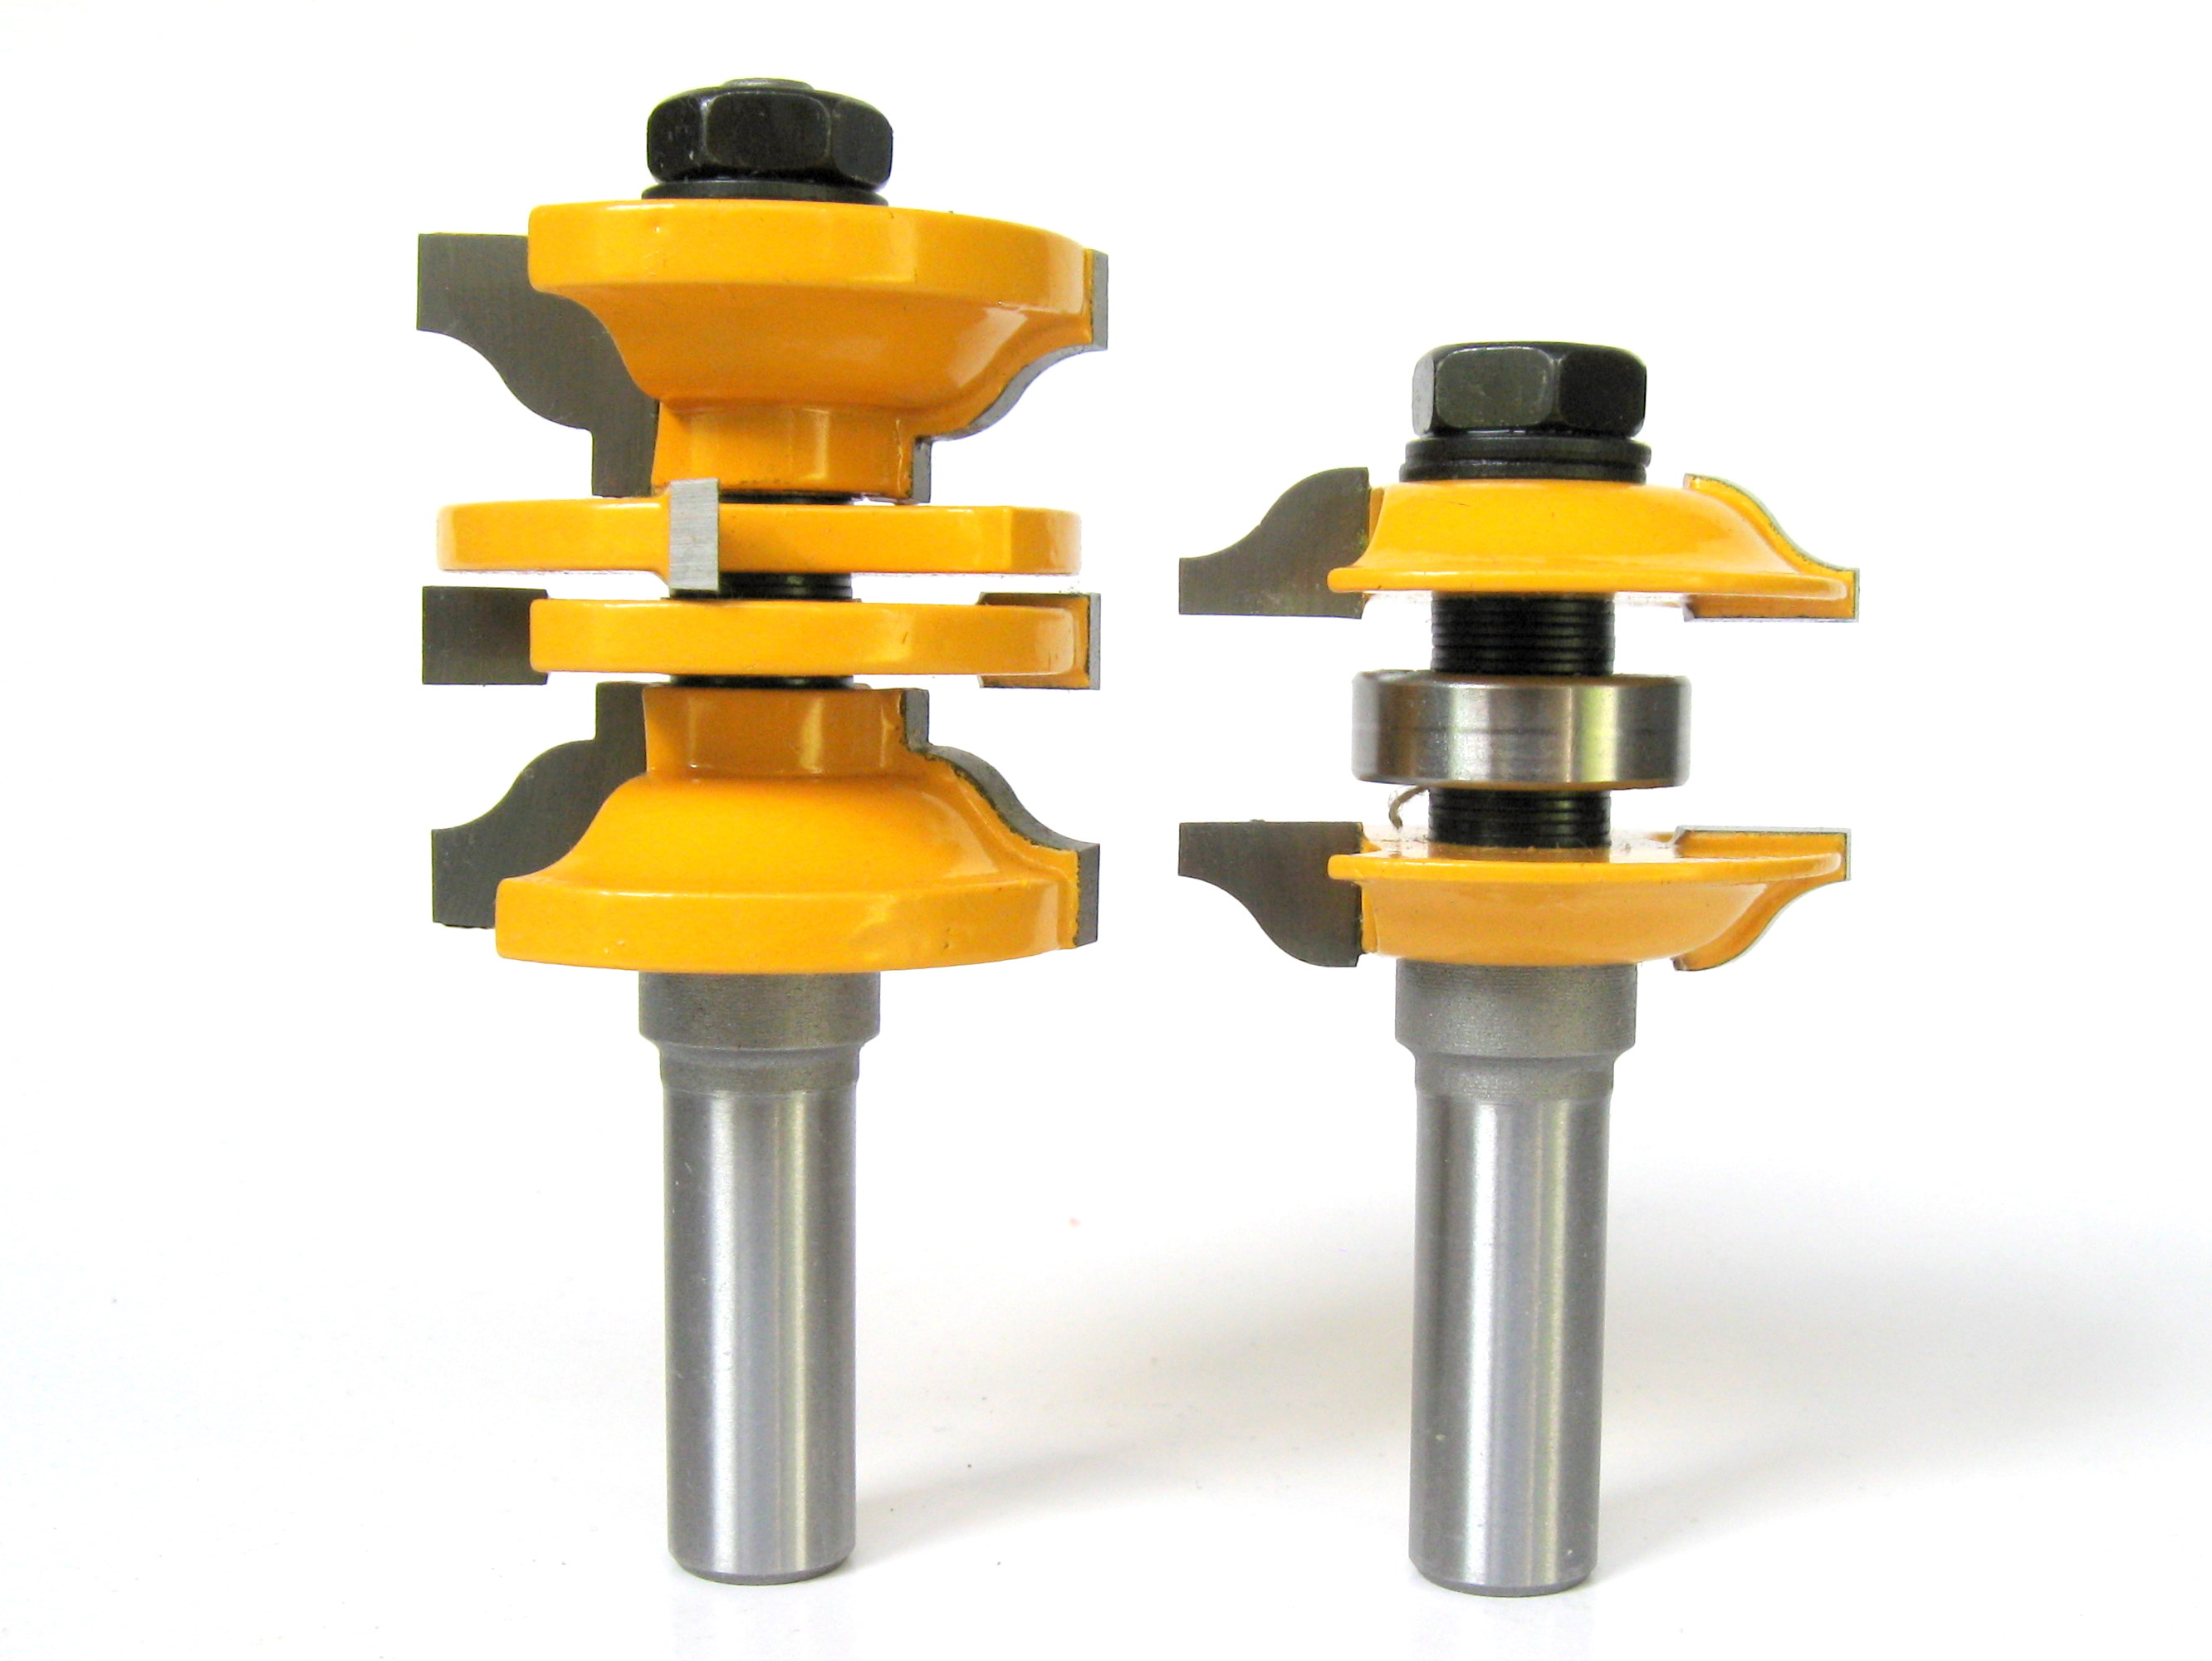 2 Pc 1 2 Sh Entry Interior Door Ogee Matched R S Router Bit Set S 7426923963094 Ebay